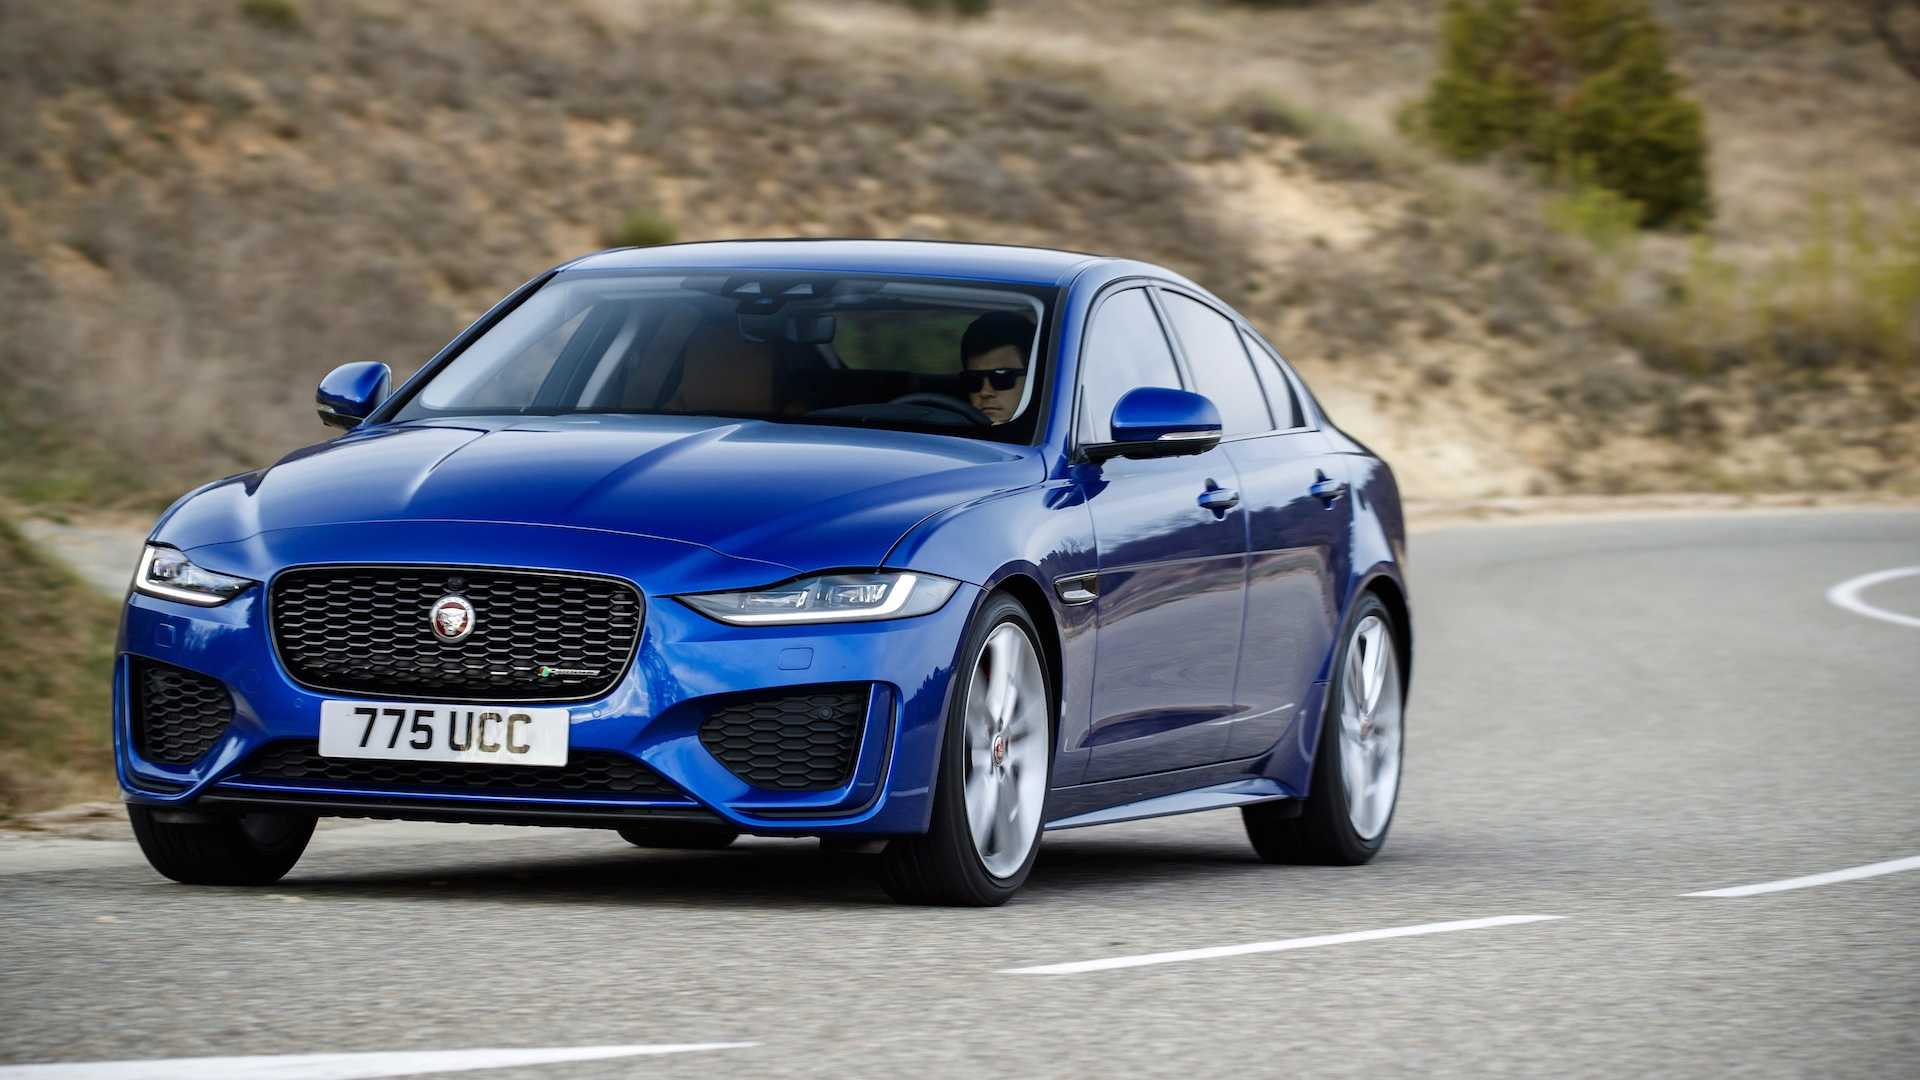 25 The Jaguar Xe 2020 Model